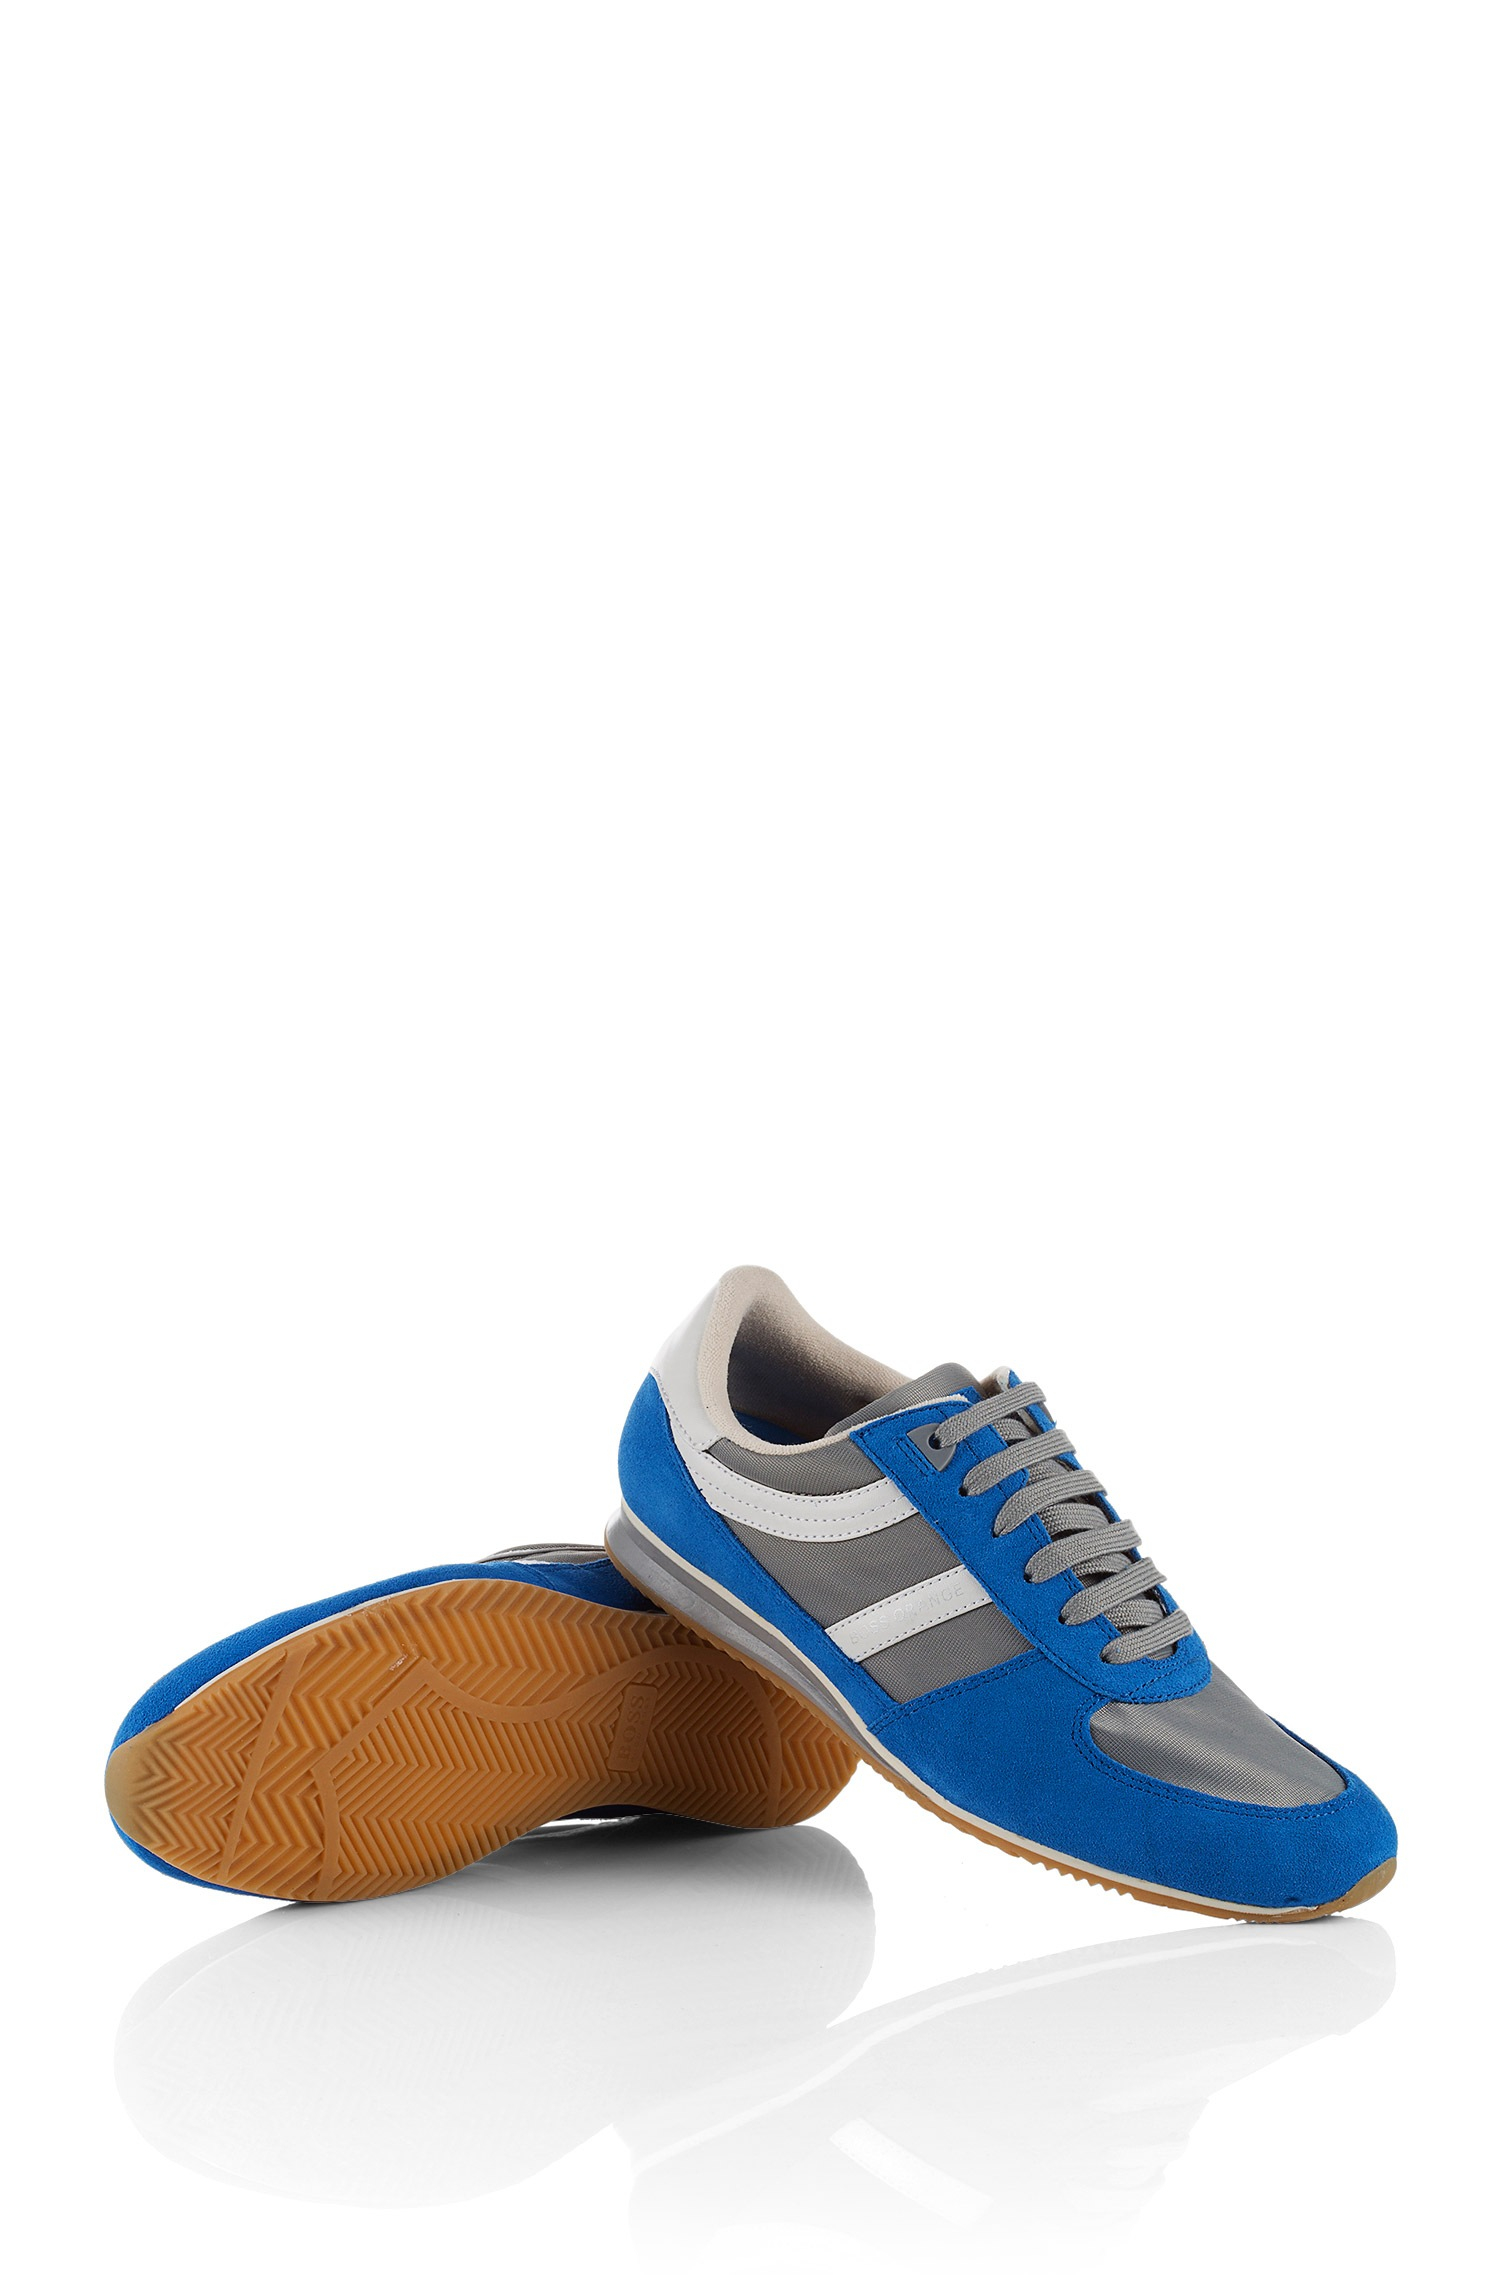 boss orange sneakers 39 adinous 39 in a fabric blend in blue. Black Bedroom Furniture Sets. Home Design Ideas